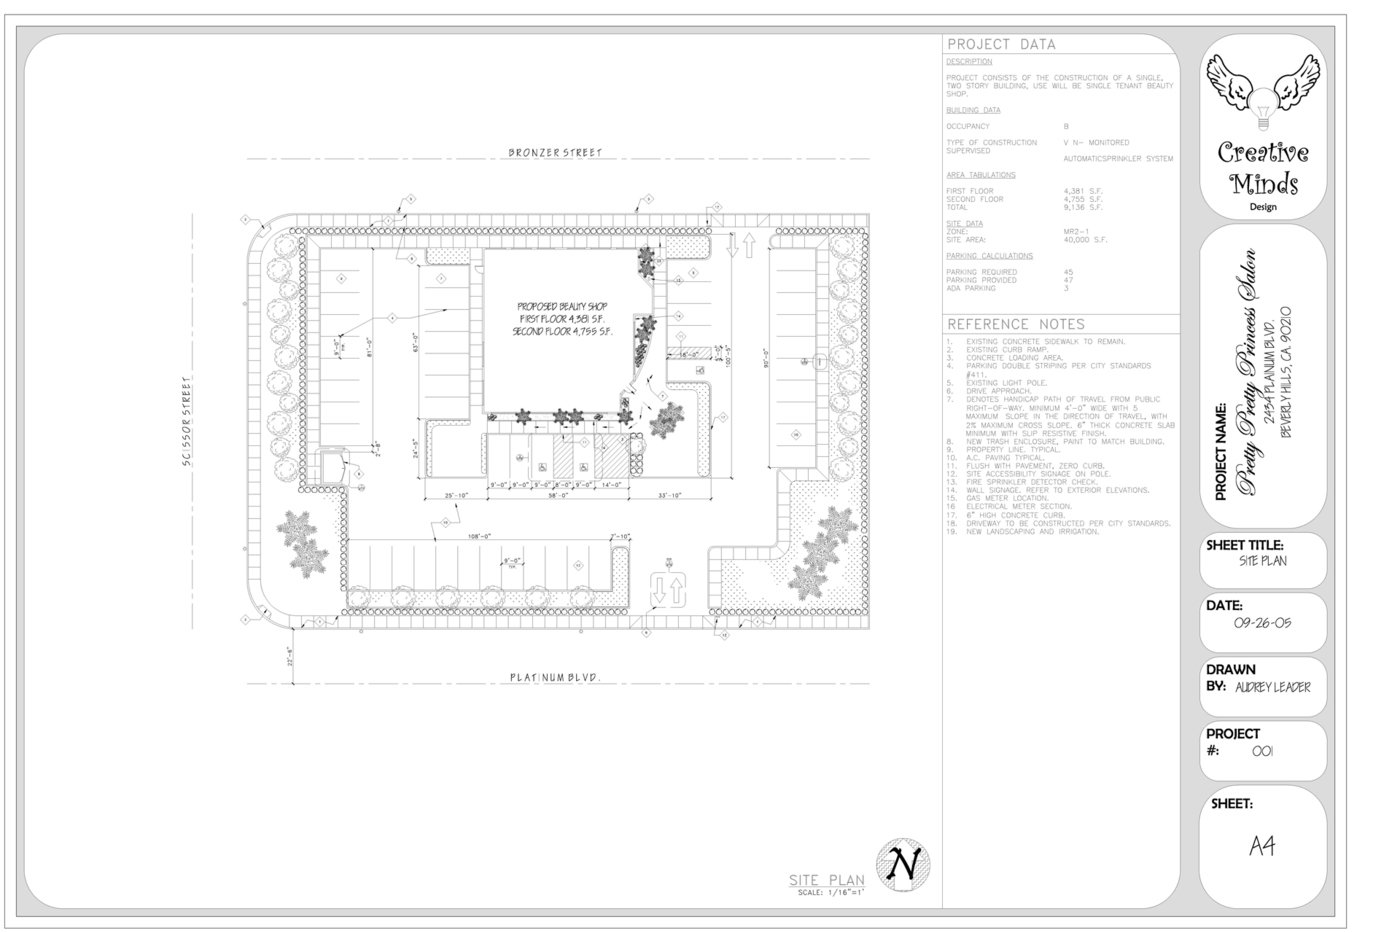 commercial cad by audrey leader at coroflot com